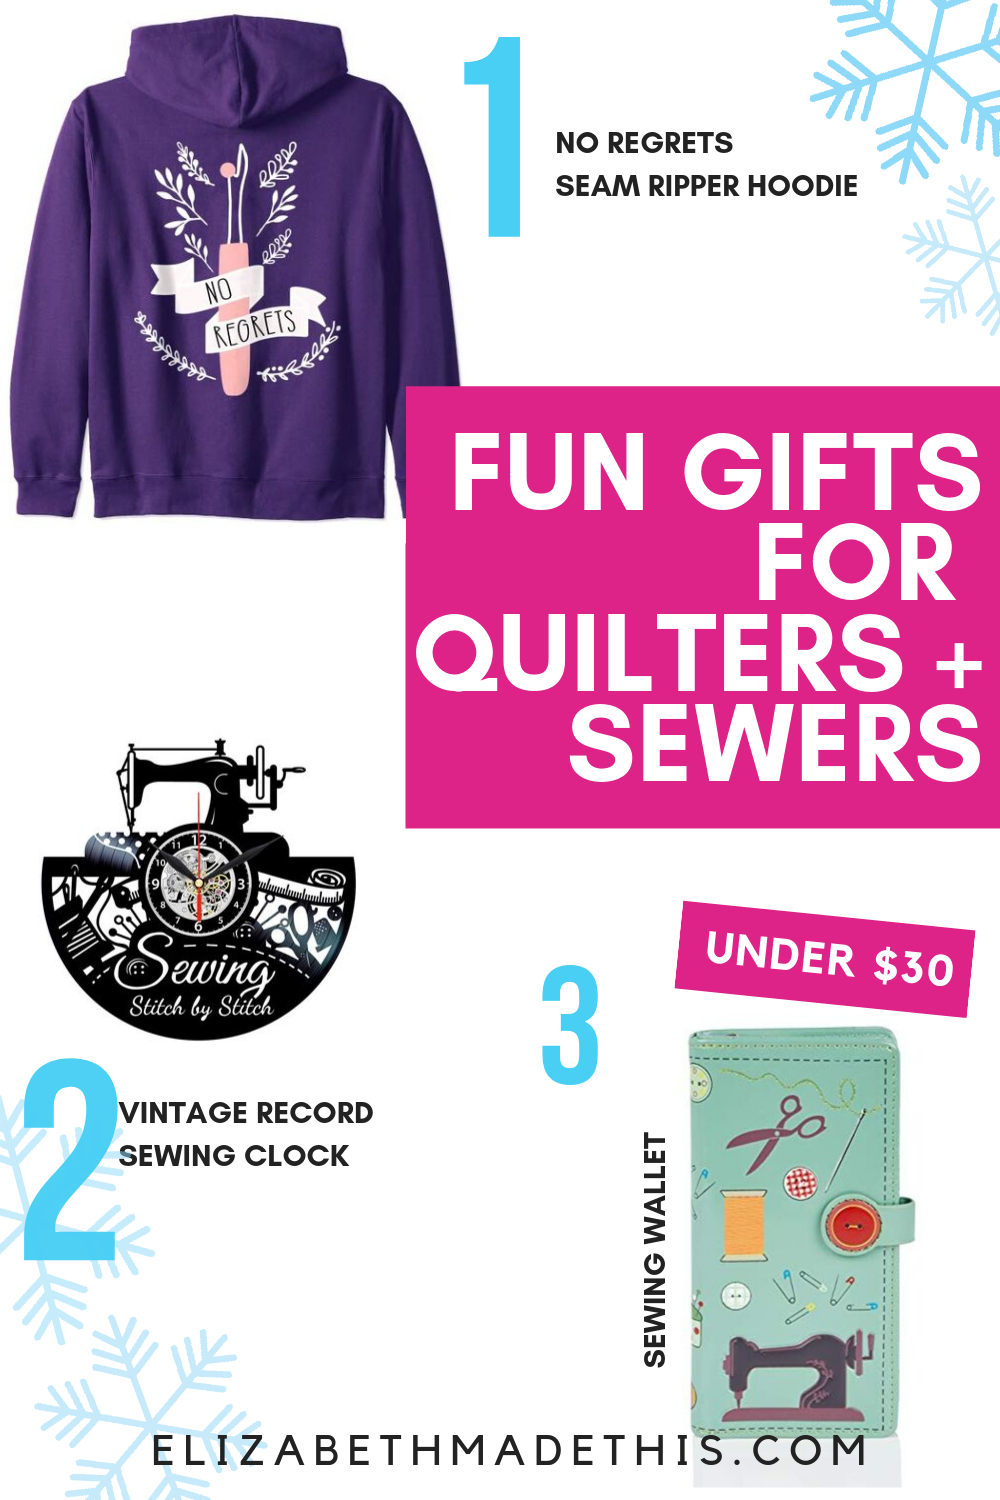 Pinterest image: Fun gifts for quilters and sewers with images of sewing gifts